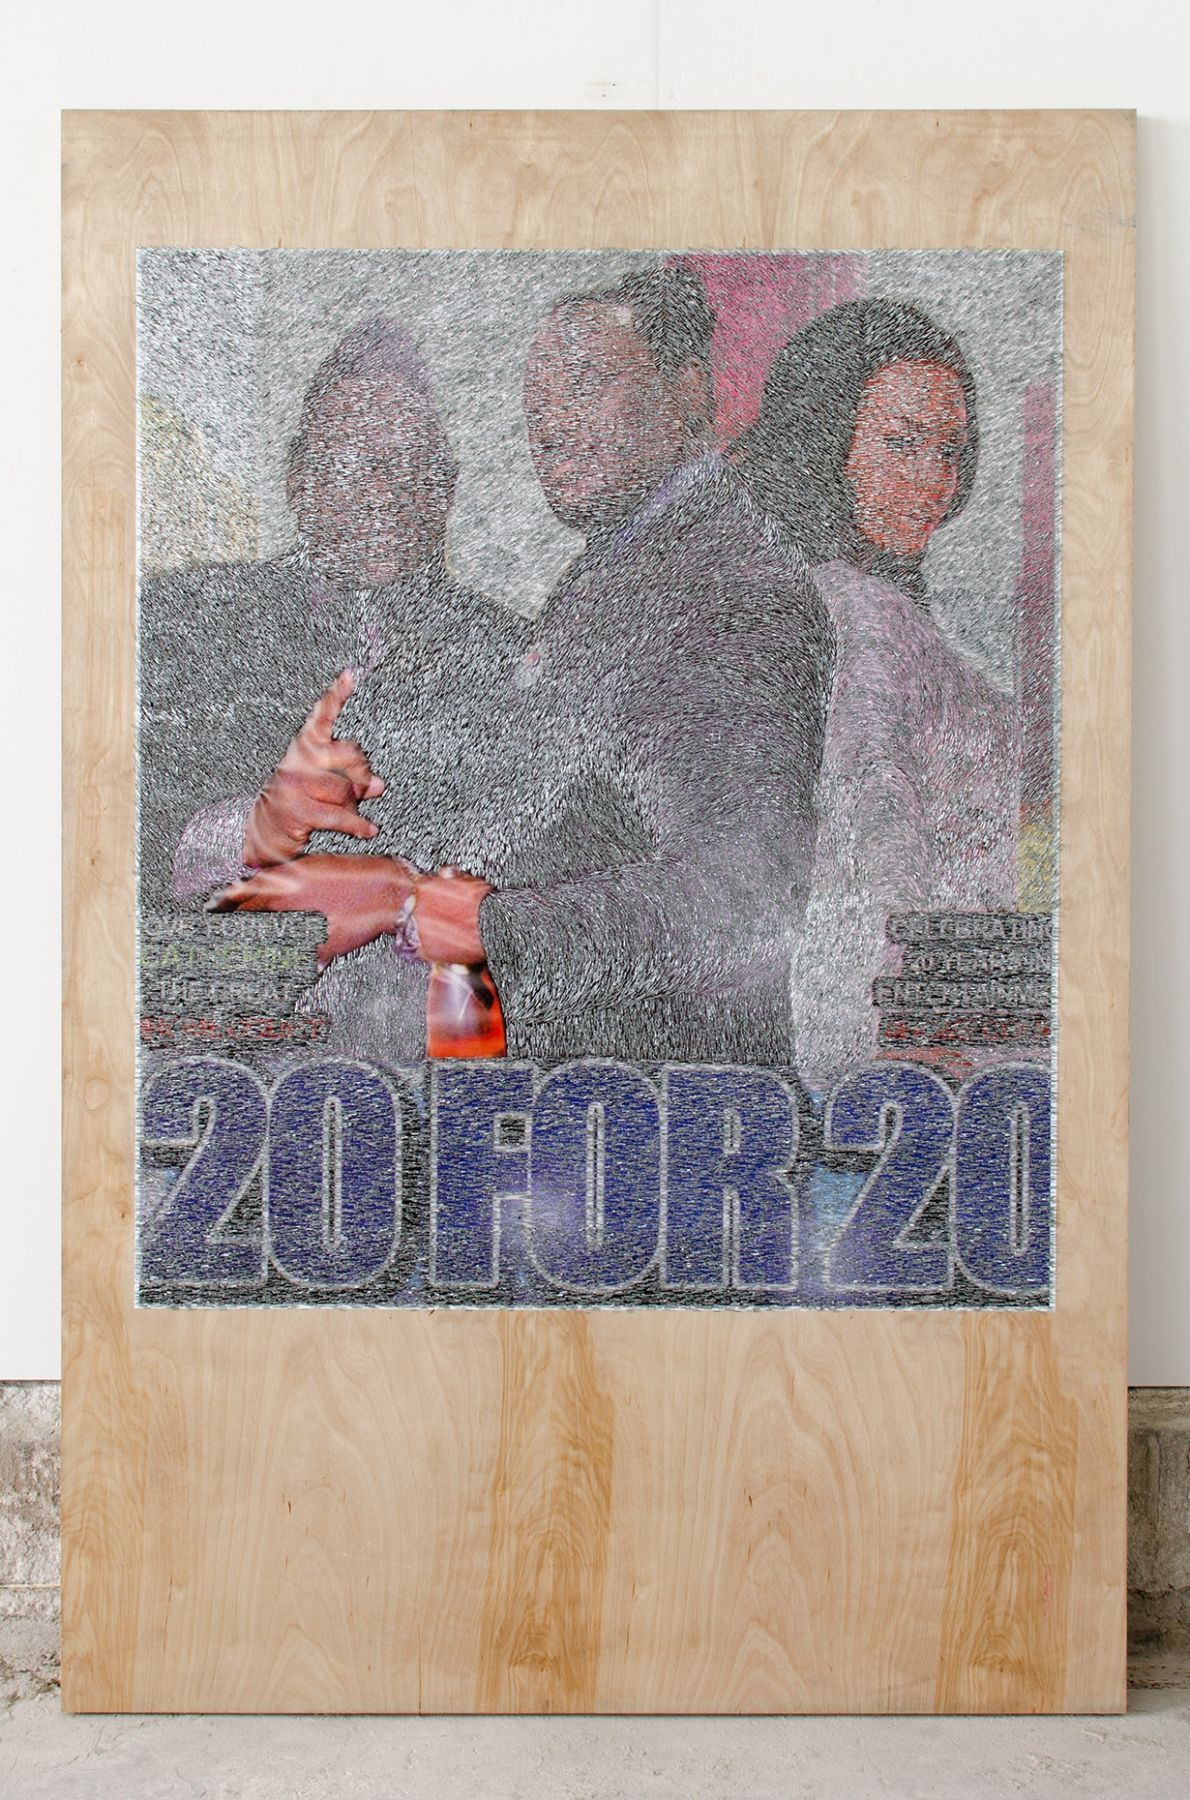 WILMER WILSON IV 20 FOR 20  2016, mixed media on wood, 72 x 48 inches